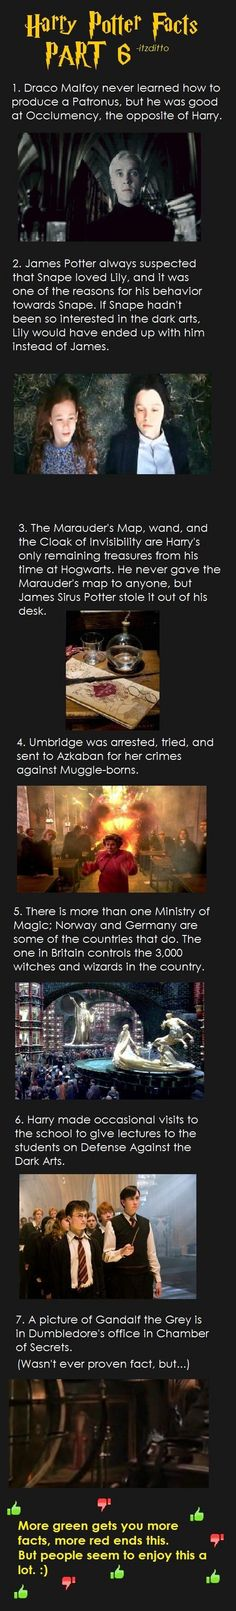 HP Facts Part 6